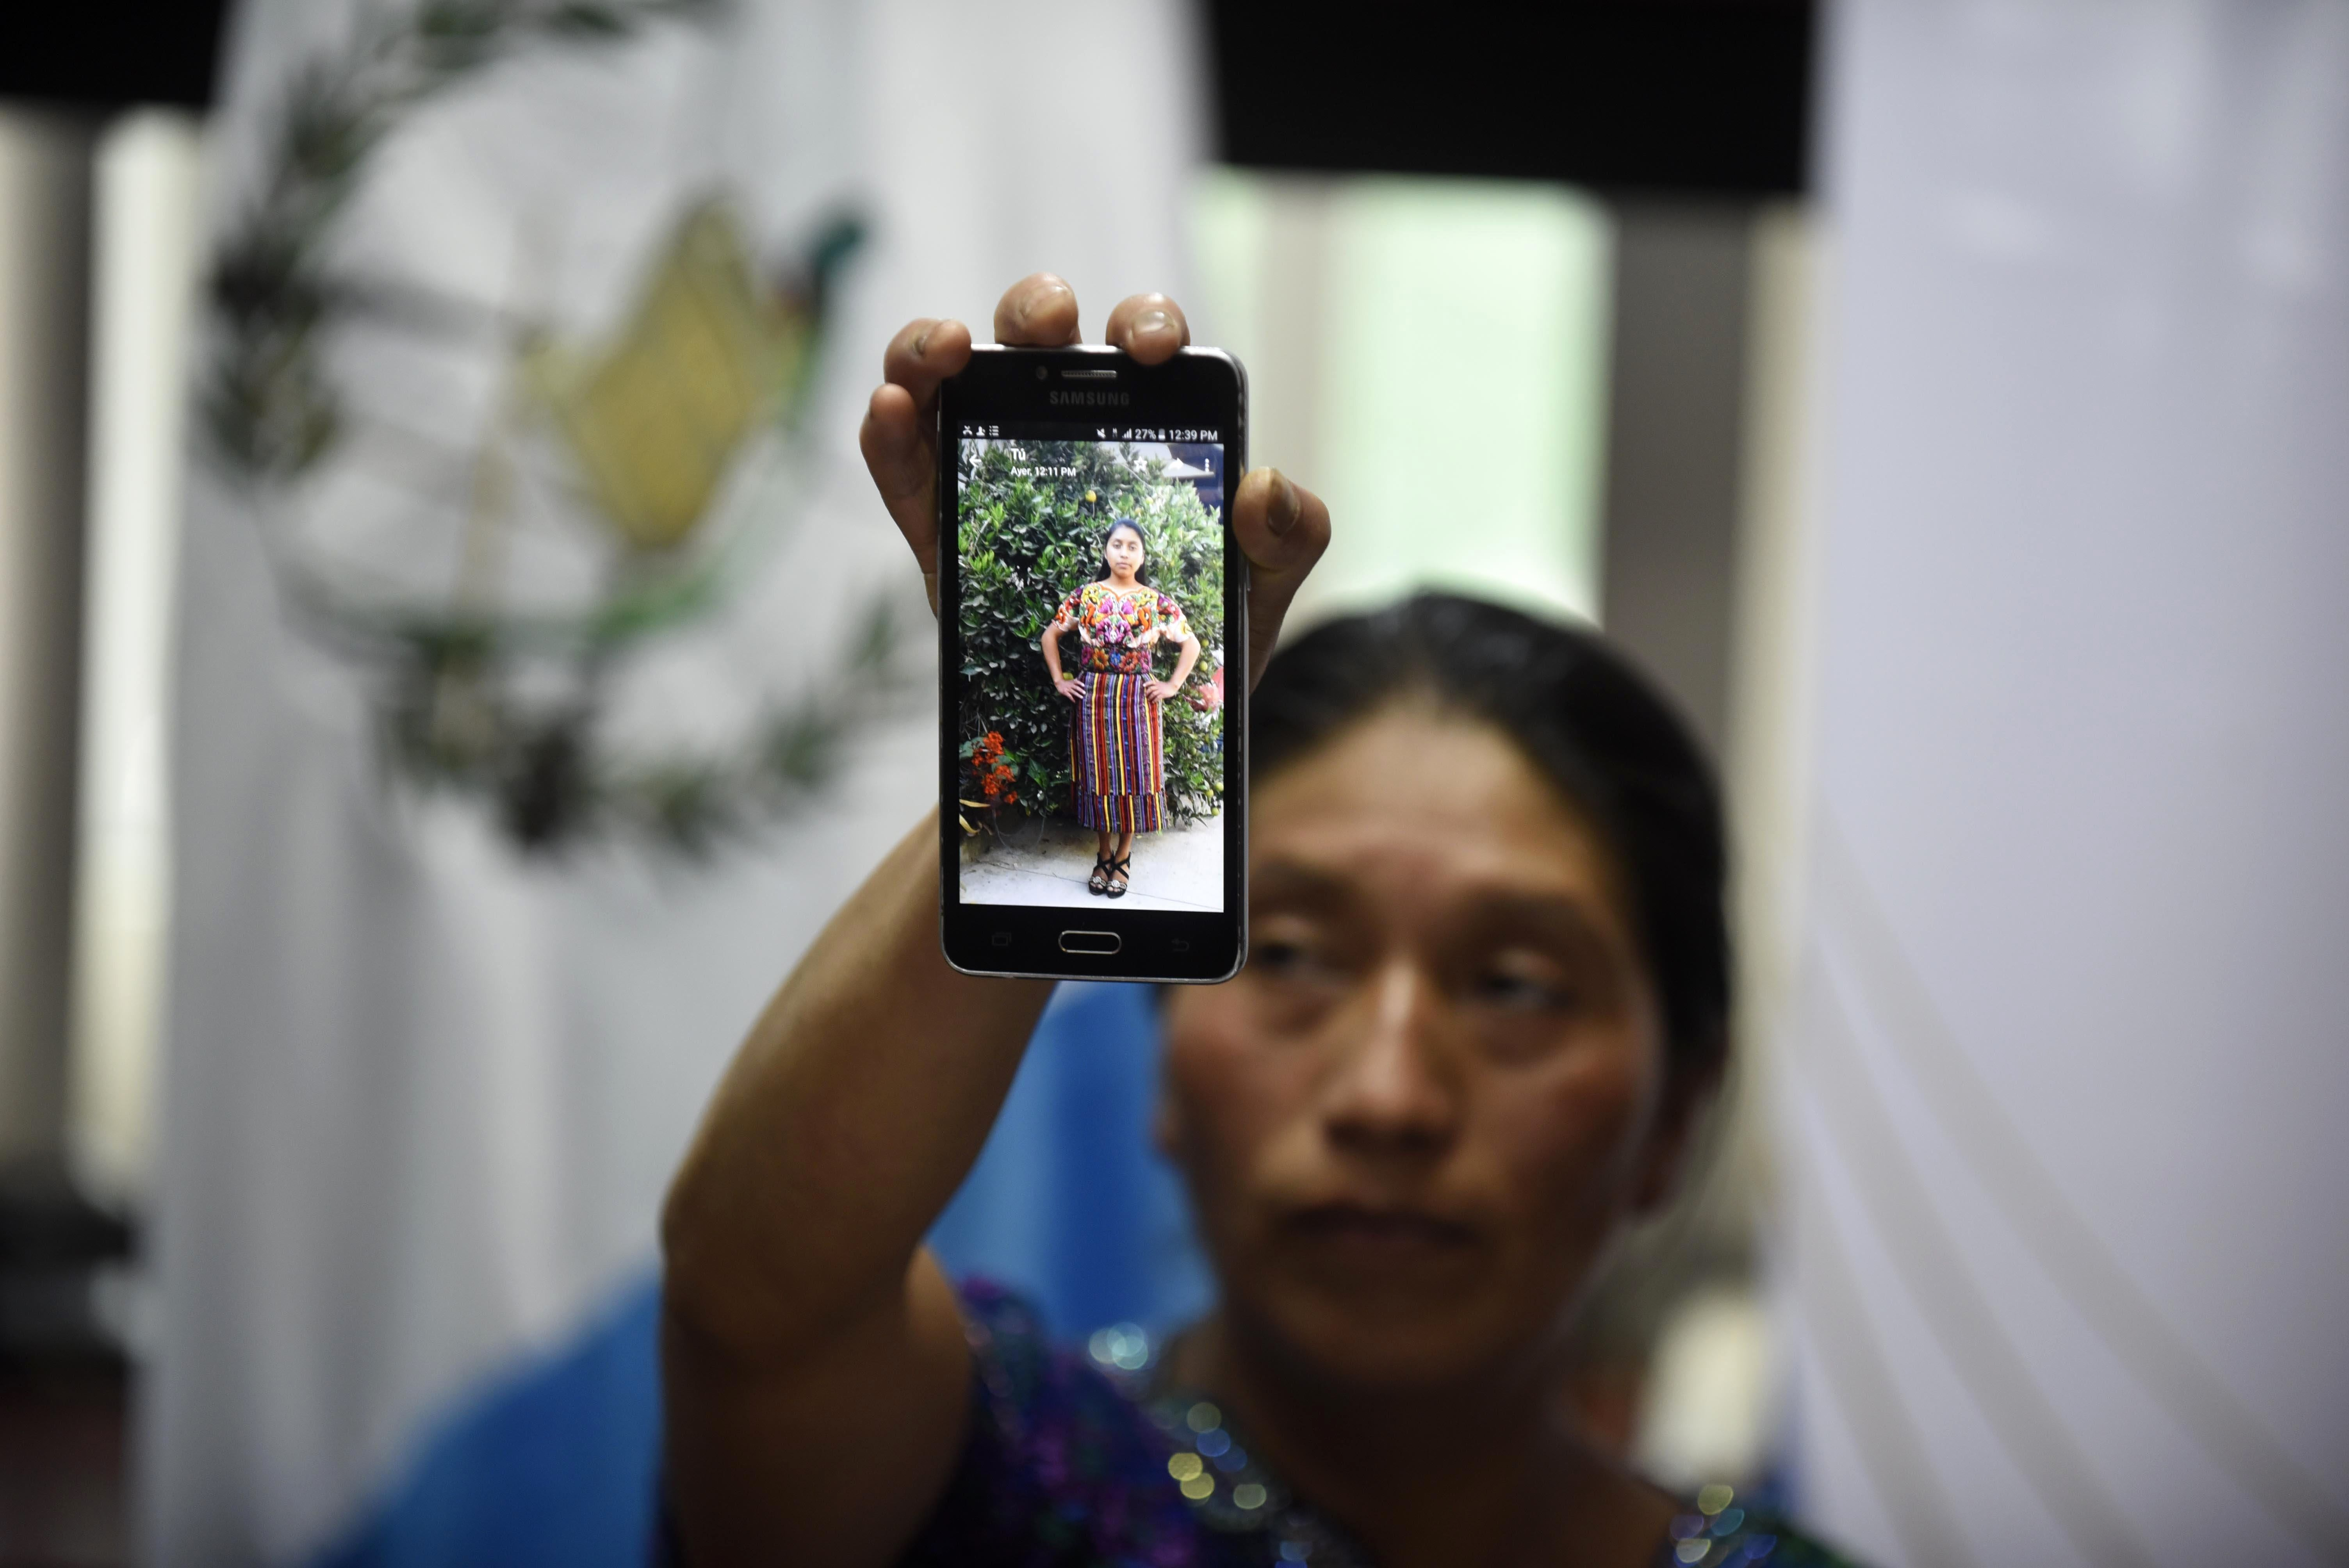 Dominga Vicente shows a photo of her niece Claudia Gomez during a press conference in Guatemala City on May 25, 2018. - The family of a 20-year-old Guatemalan woman who was allegedly shot and killed by a U.S. border patrol agent demanded justice Friday and called for her body to be sent back home so they could bury her in her native village. (Photo by JOHAN ORDONEZ / AFP)        (Photo credit should read JOHAN ORDONEZ/AFP/Getty Images)